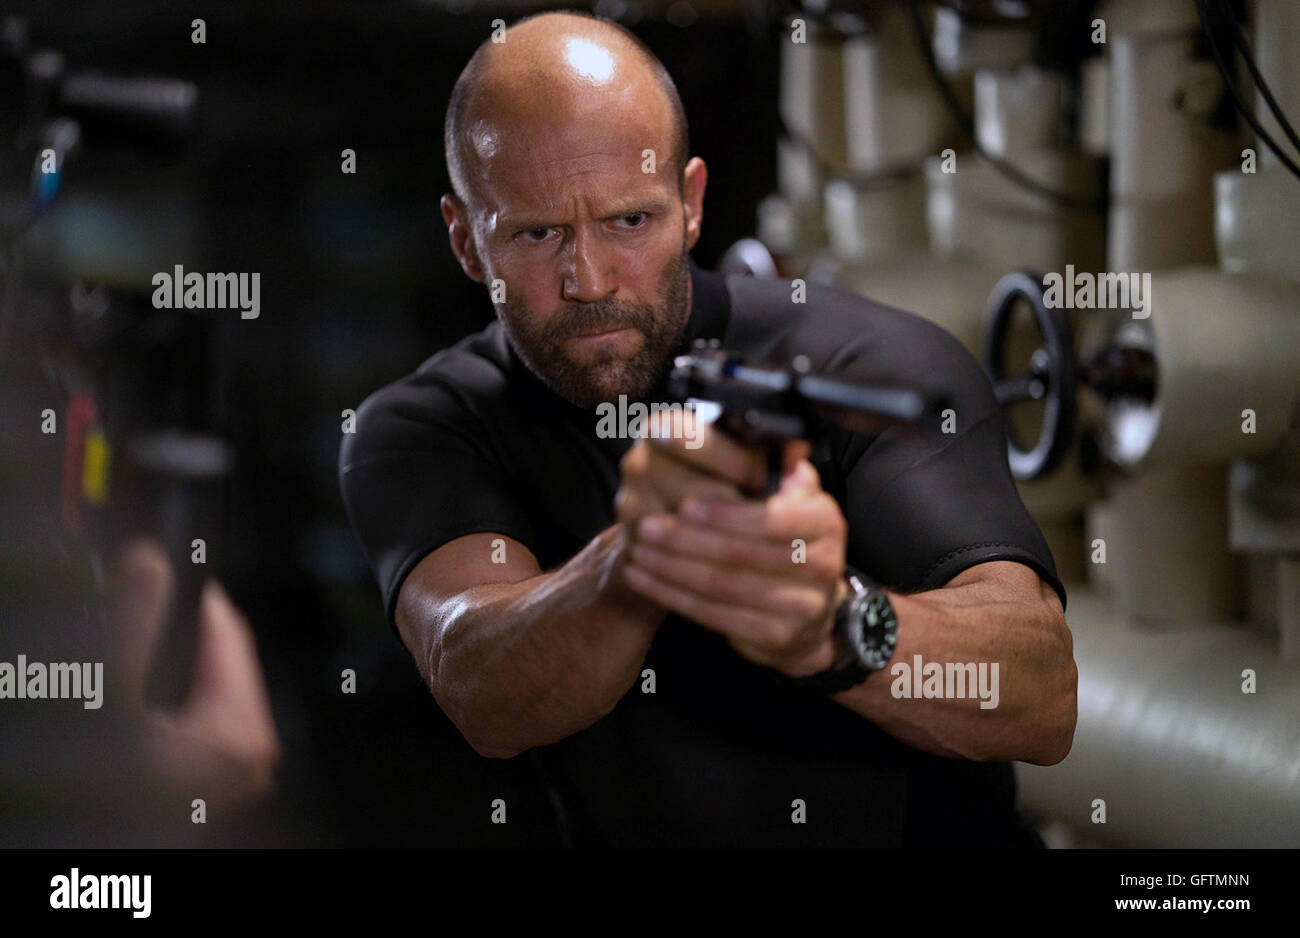 Mechanic: Resurrection is an upcoming 2016 American action thriller film directed by Dennis Gansel. The film stars Stock Photo